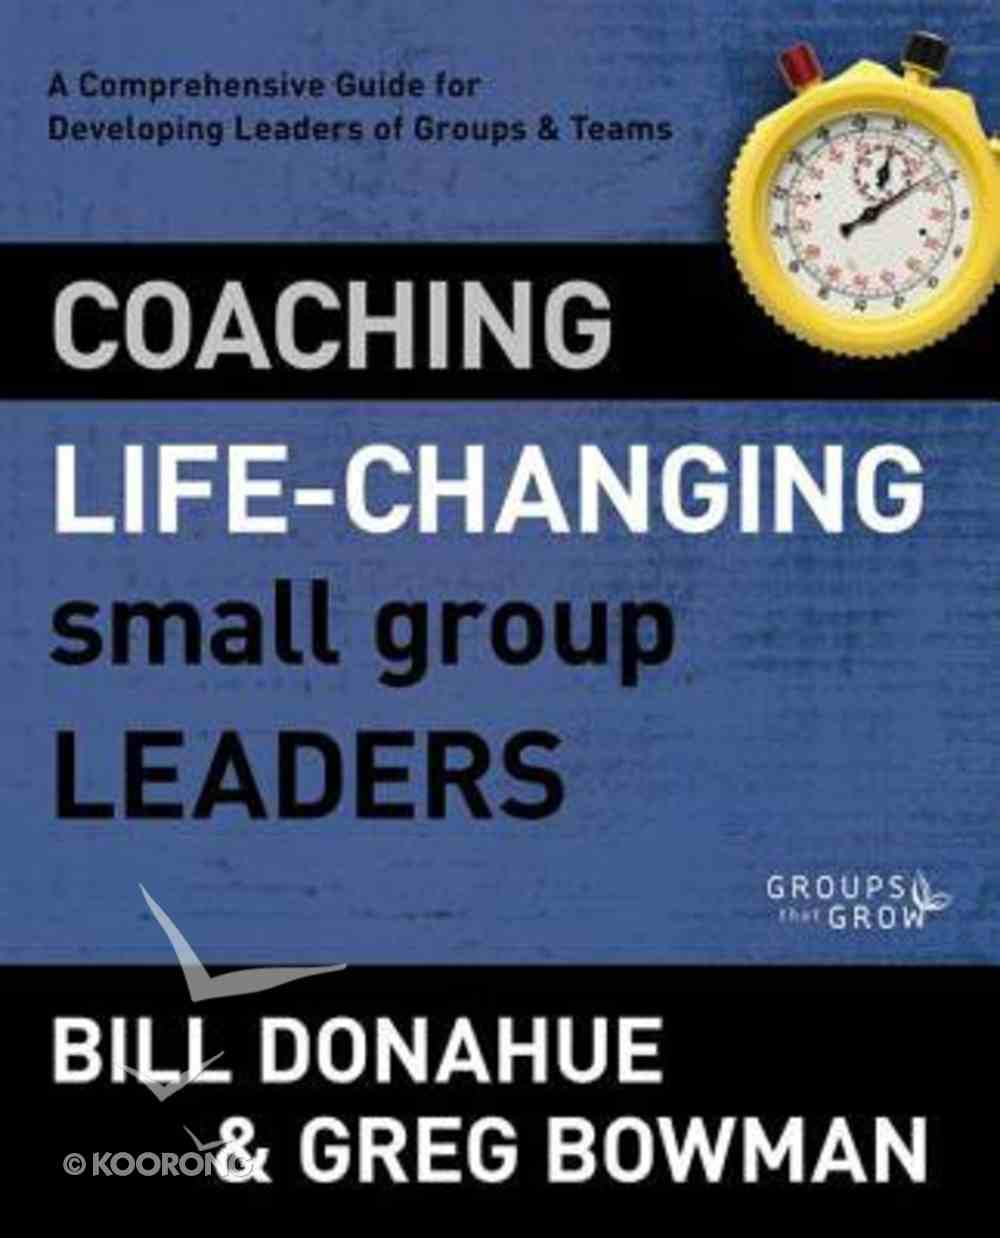 Coaching Life-Changing Small Group Leaders (Groups That Grow Series) Paperback